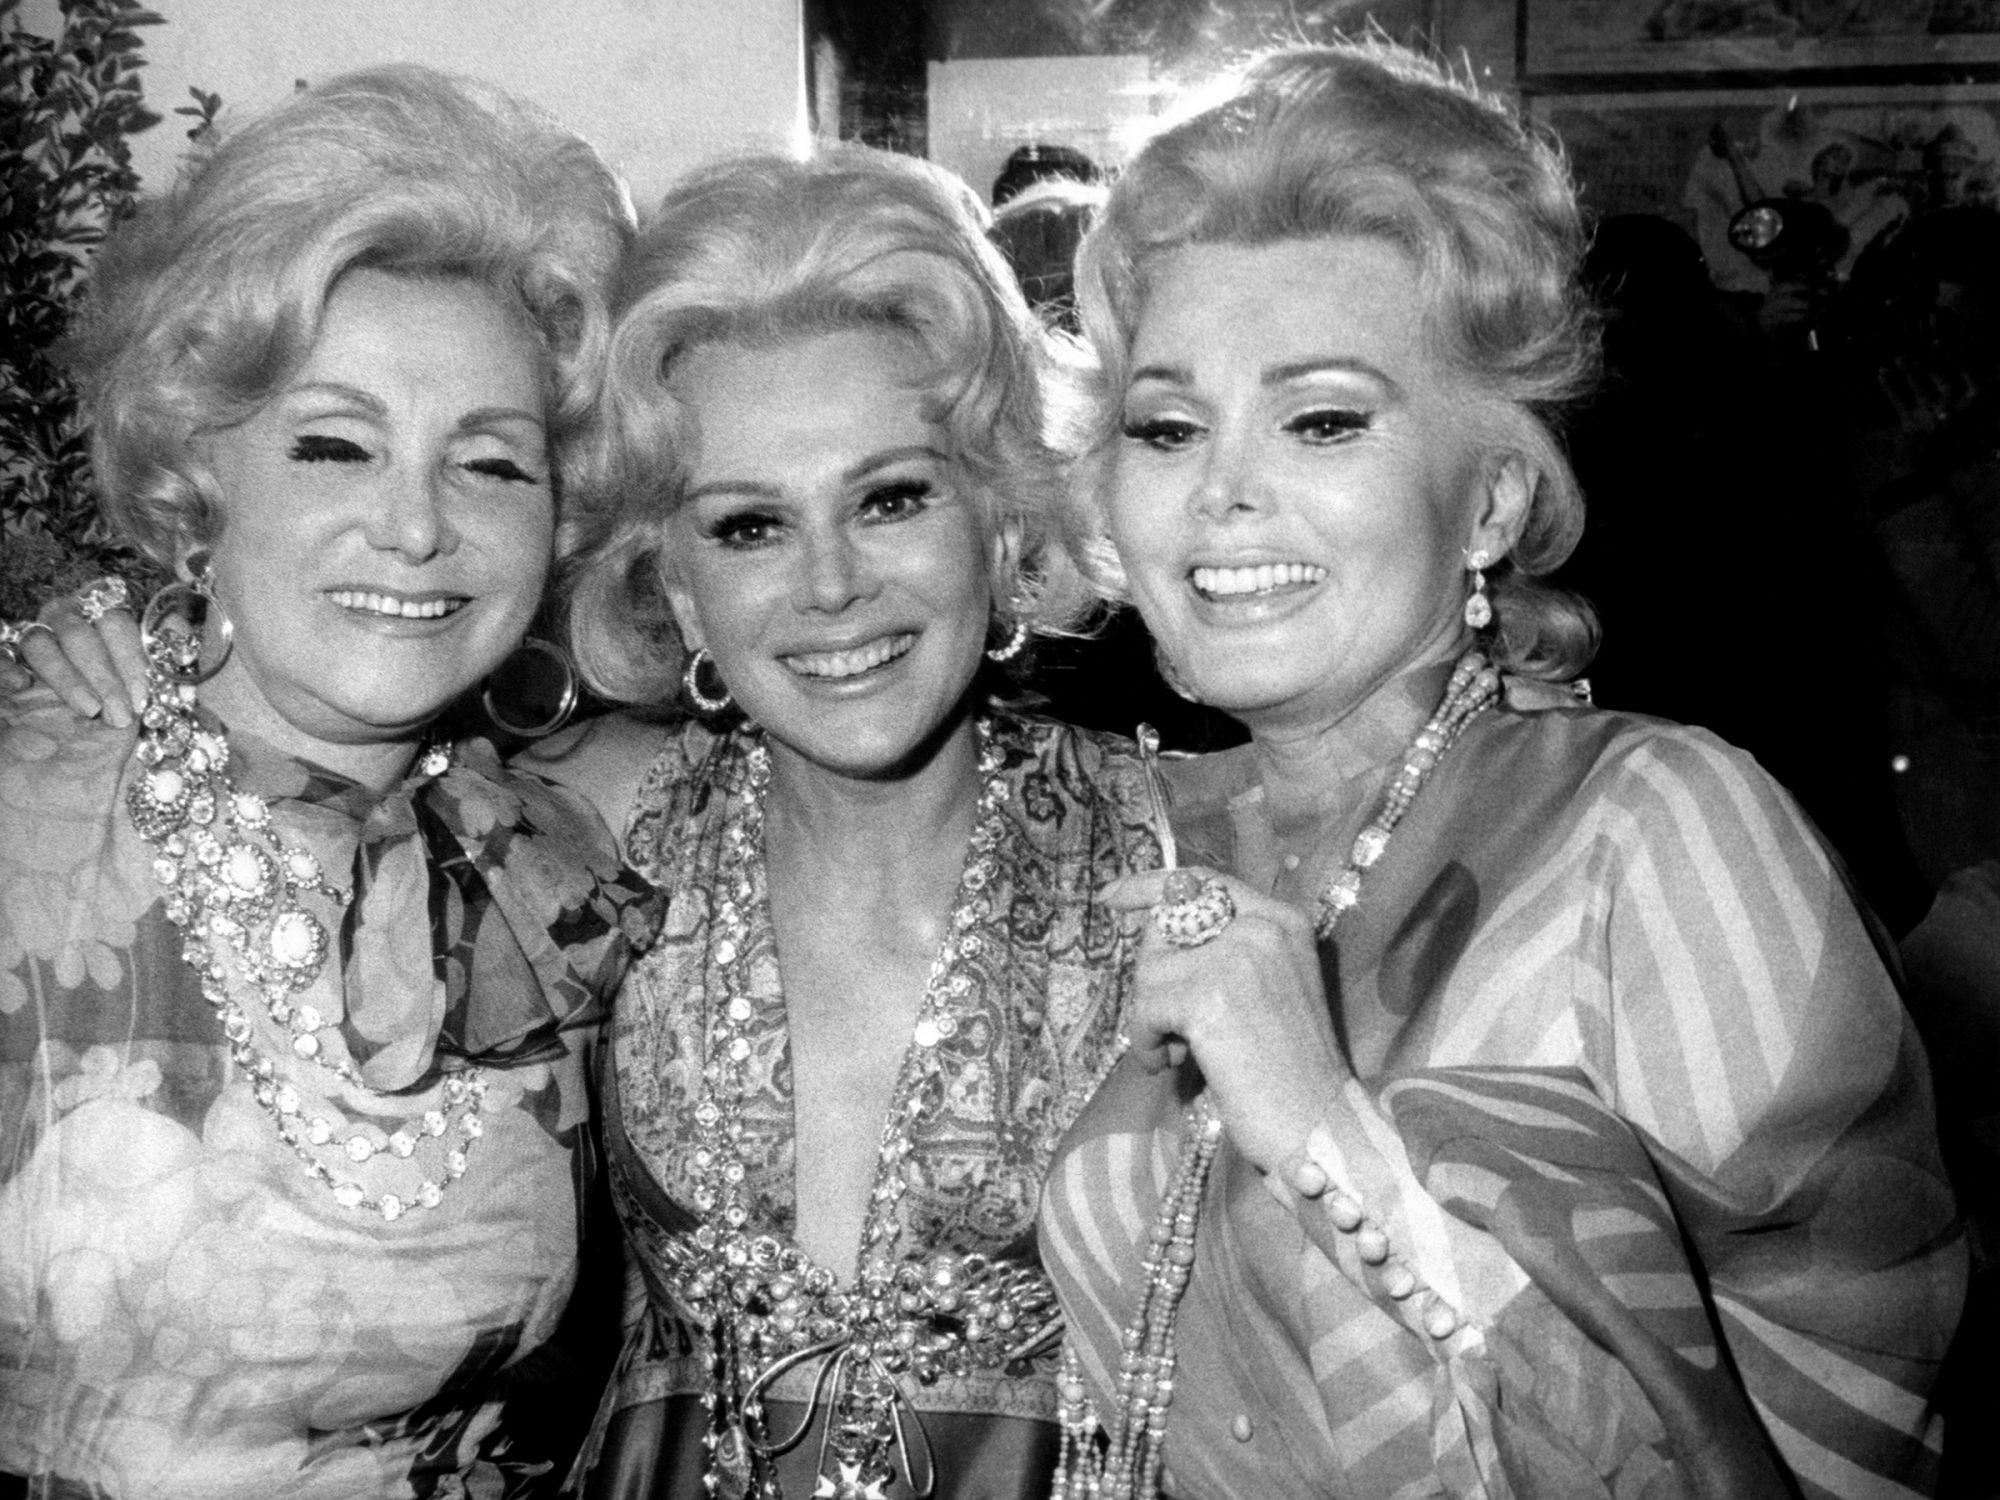 Zsa Zsa Gabor (r) with mother, Jolie (l), sister, Eva (center), backstage at the Morosco Theater for